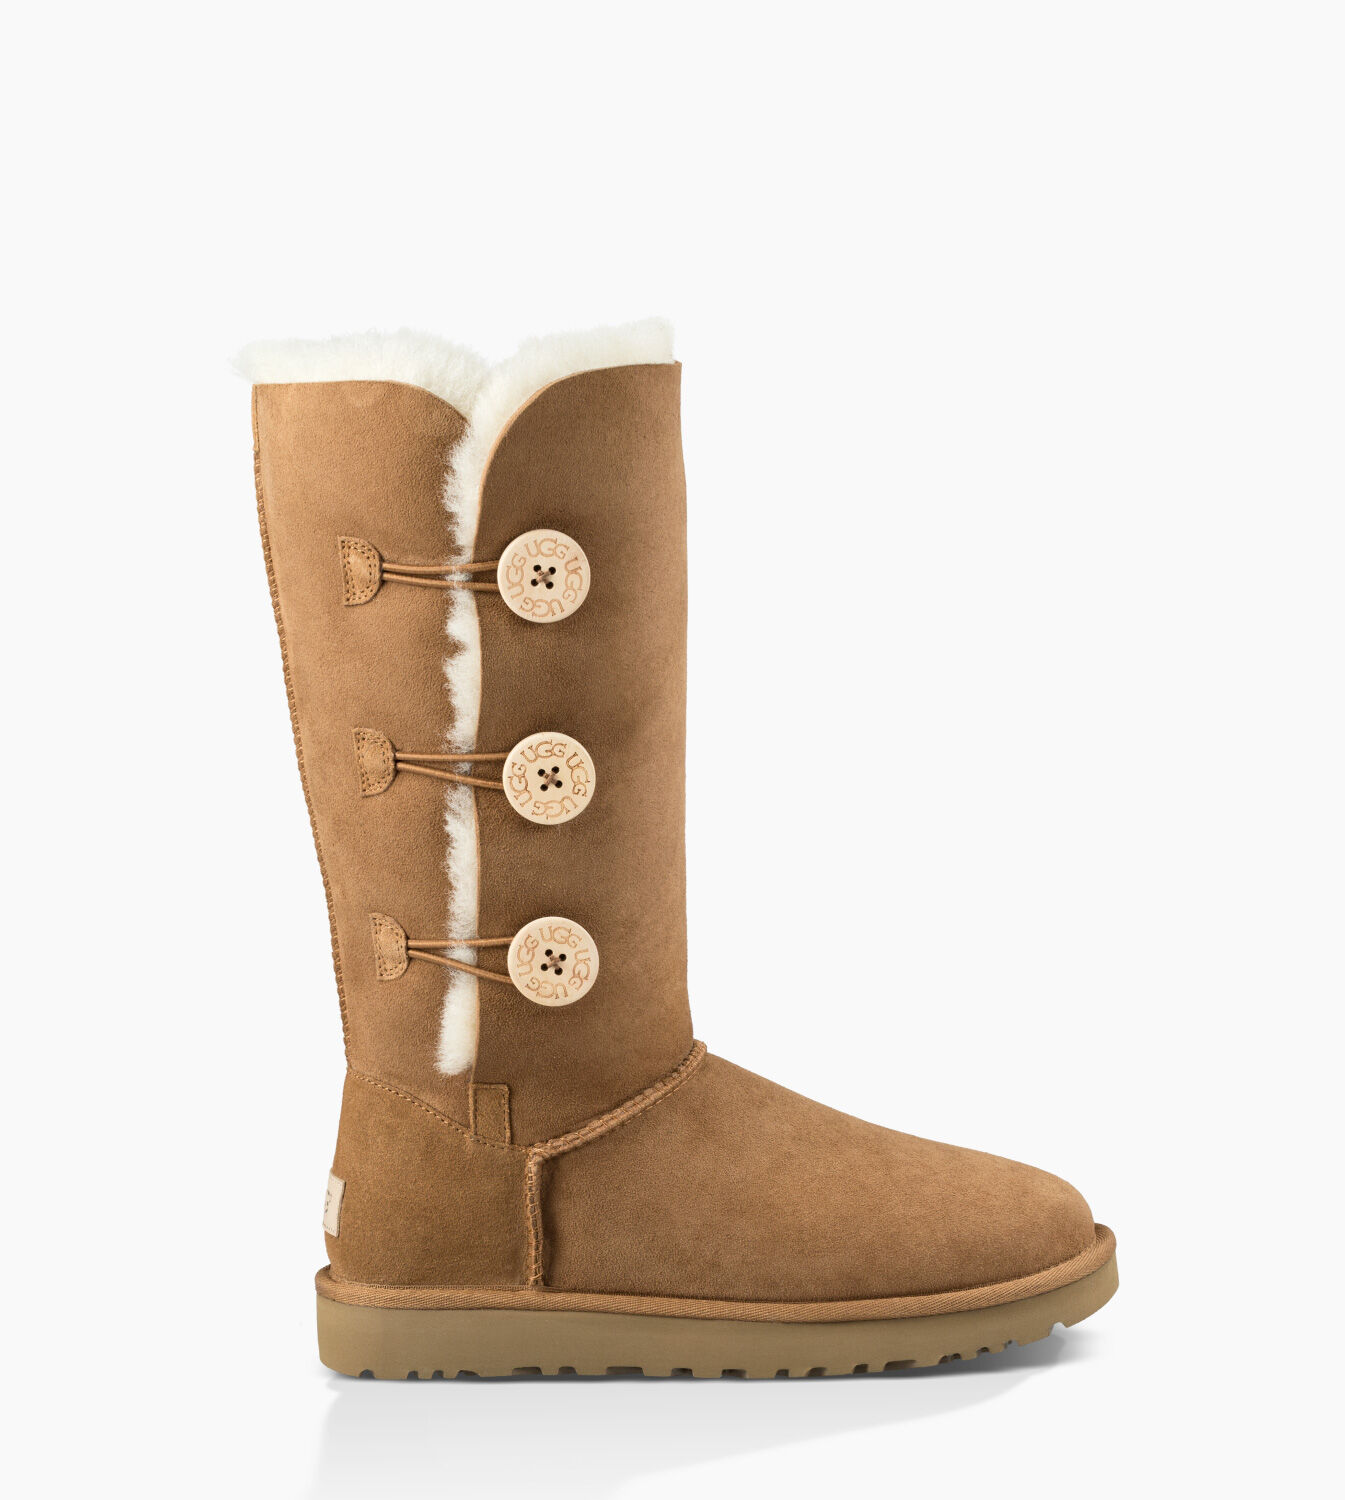 women s boots shop classic ankle heeled styles ugg official rh ugg com